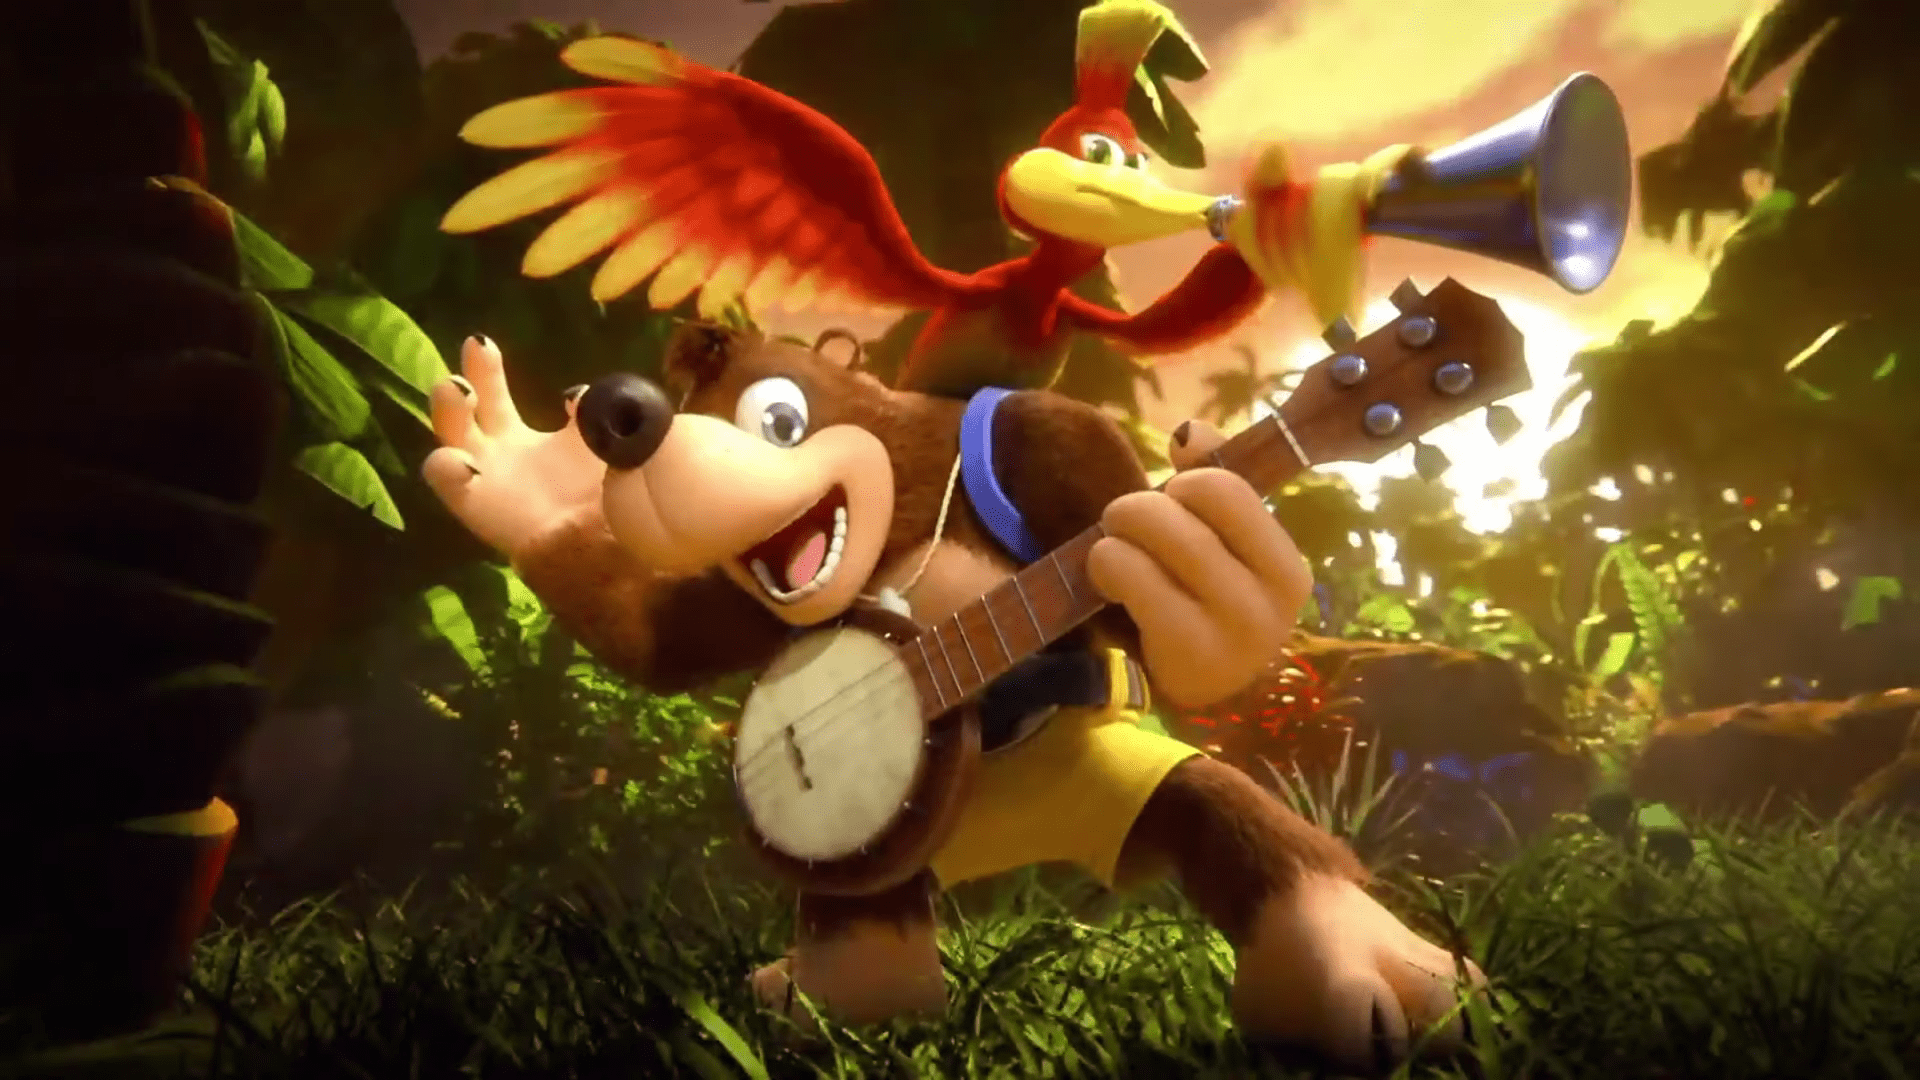 Old School Nintendo Characters Banjo and Kazooie Return To Switch For Super Smash Bros. Ultimate